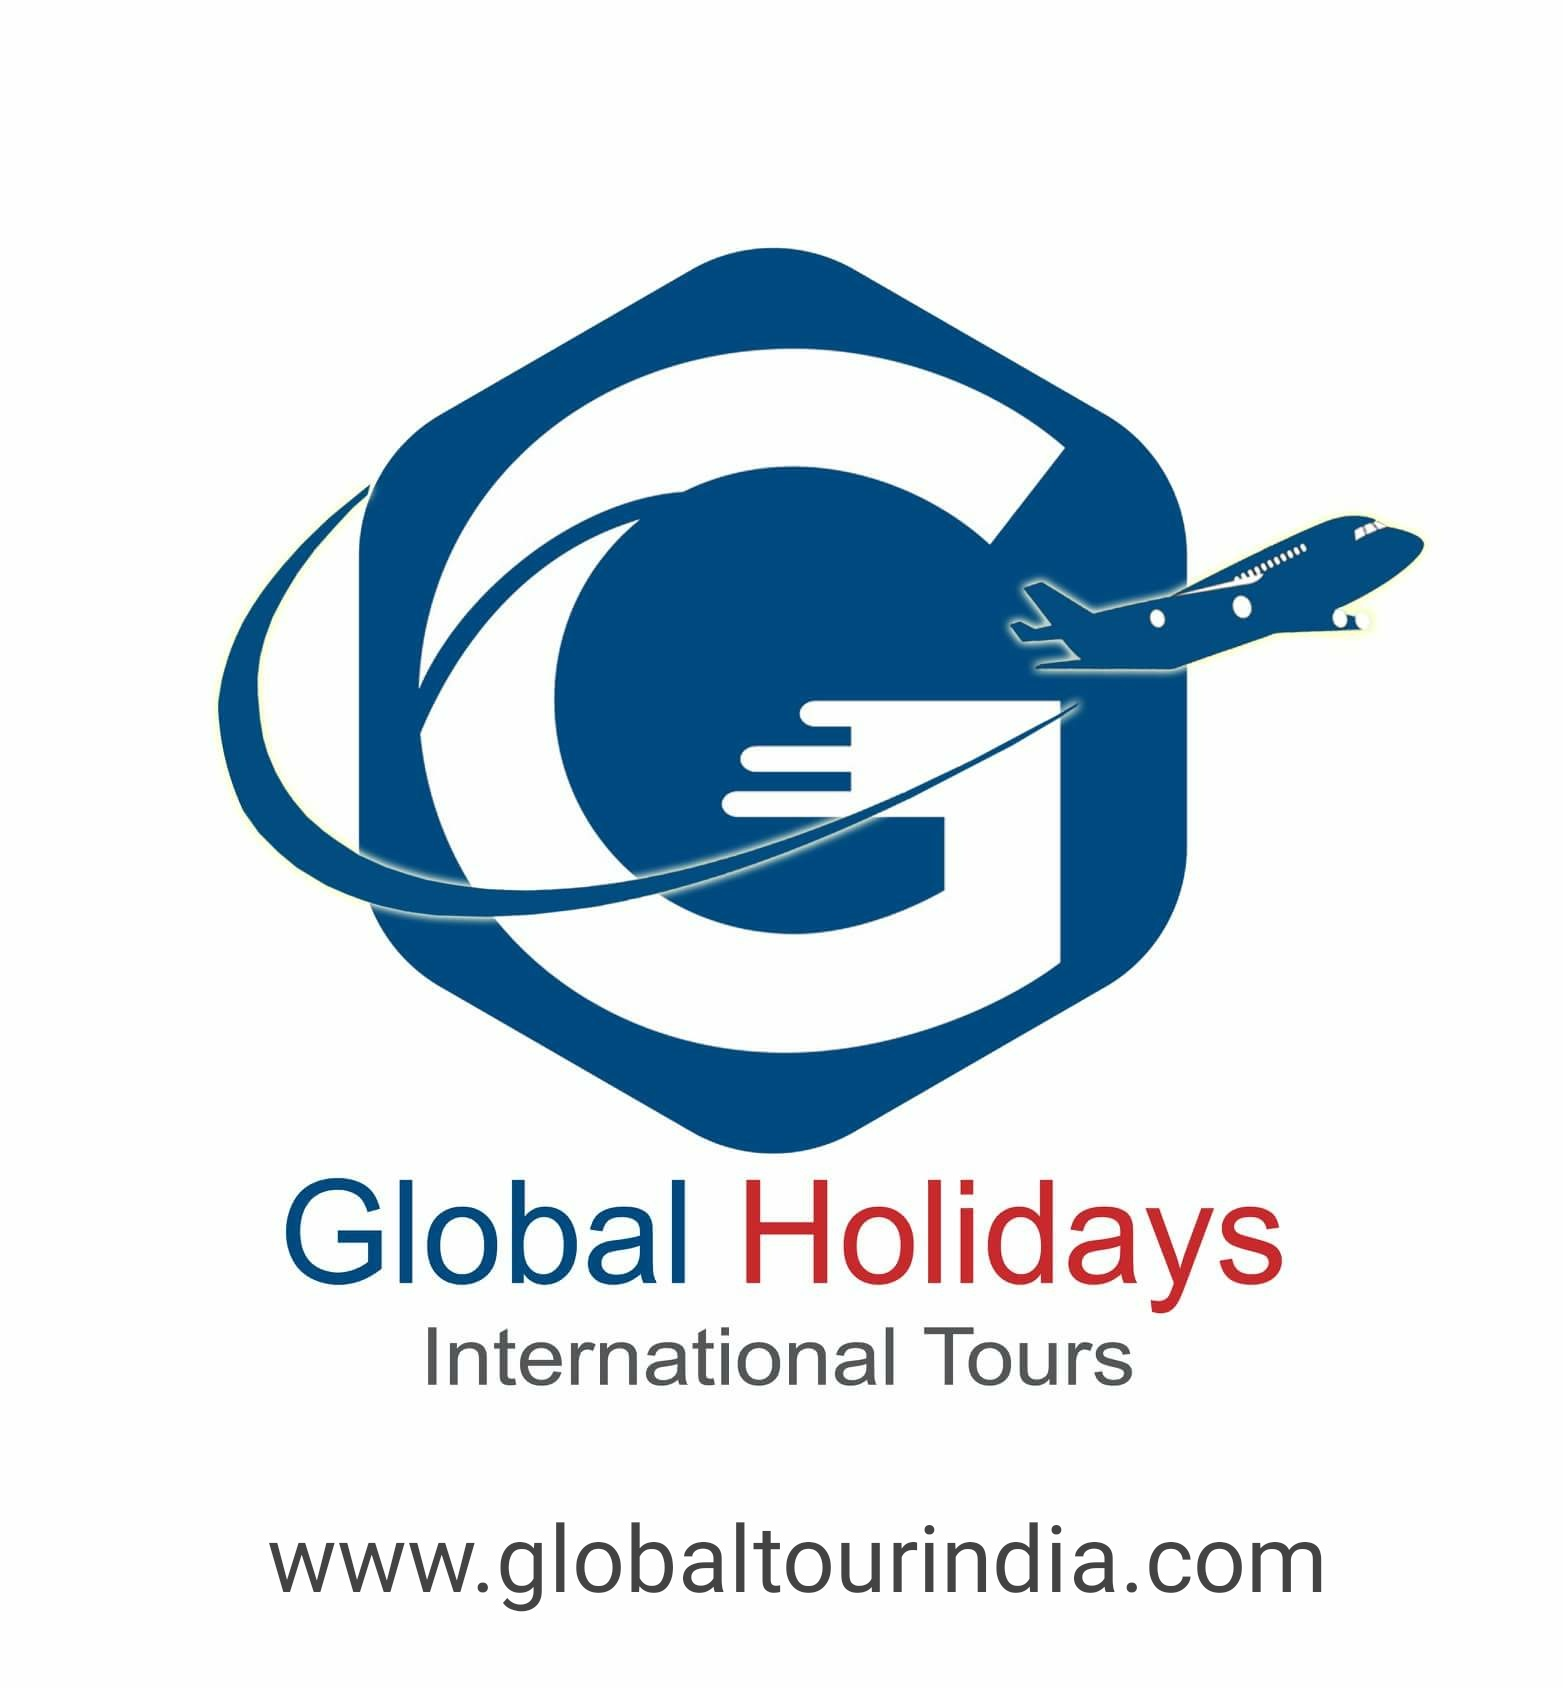 Global Holiday International Tours_image1